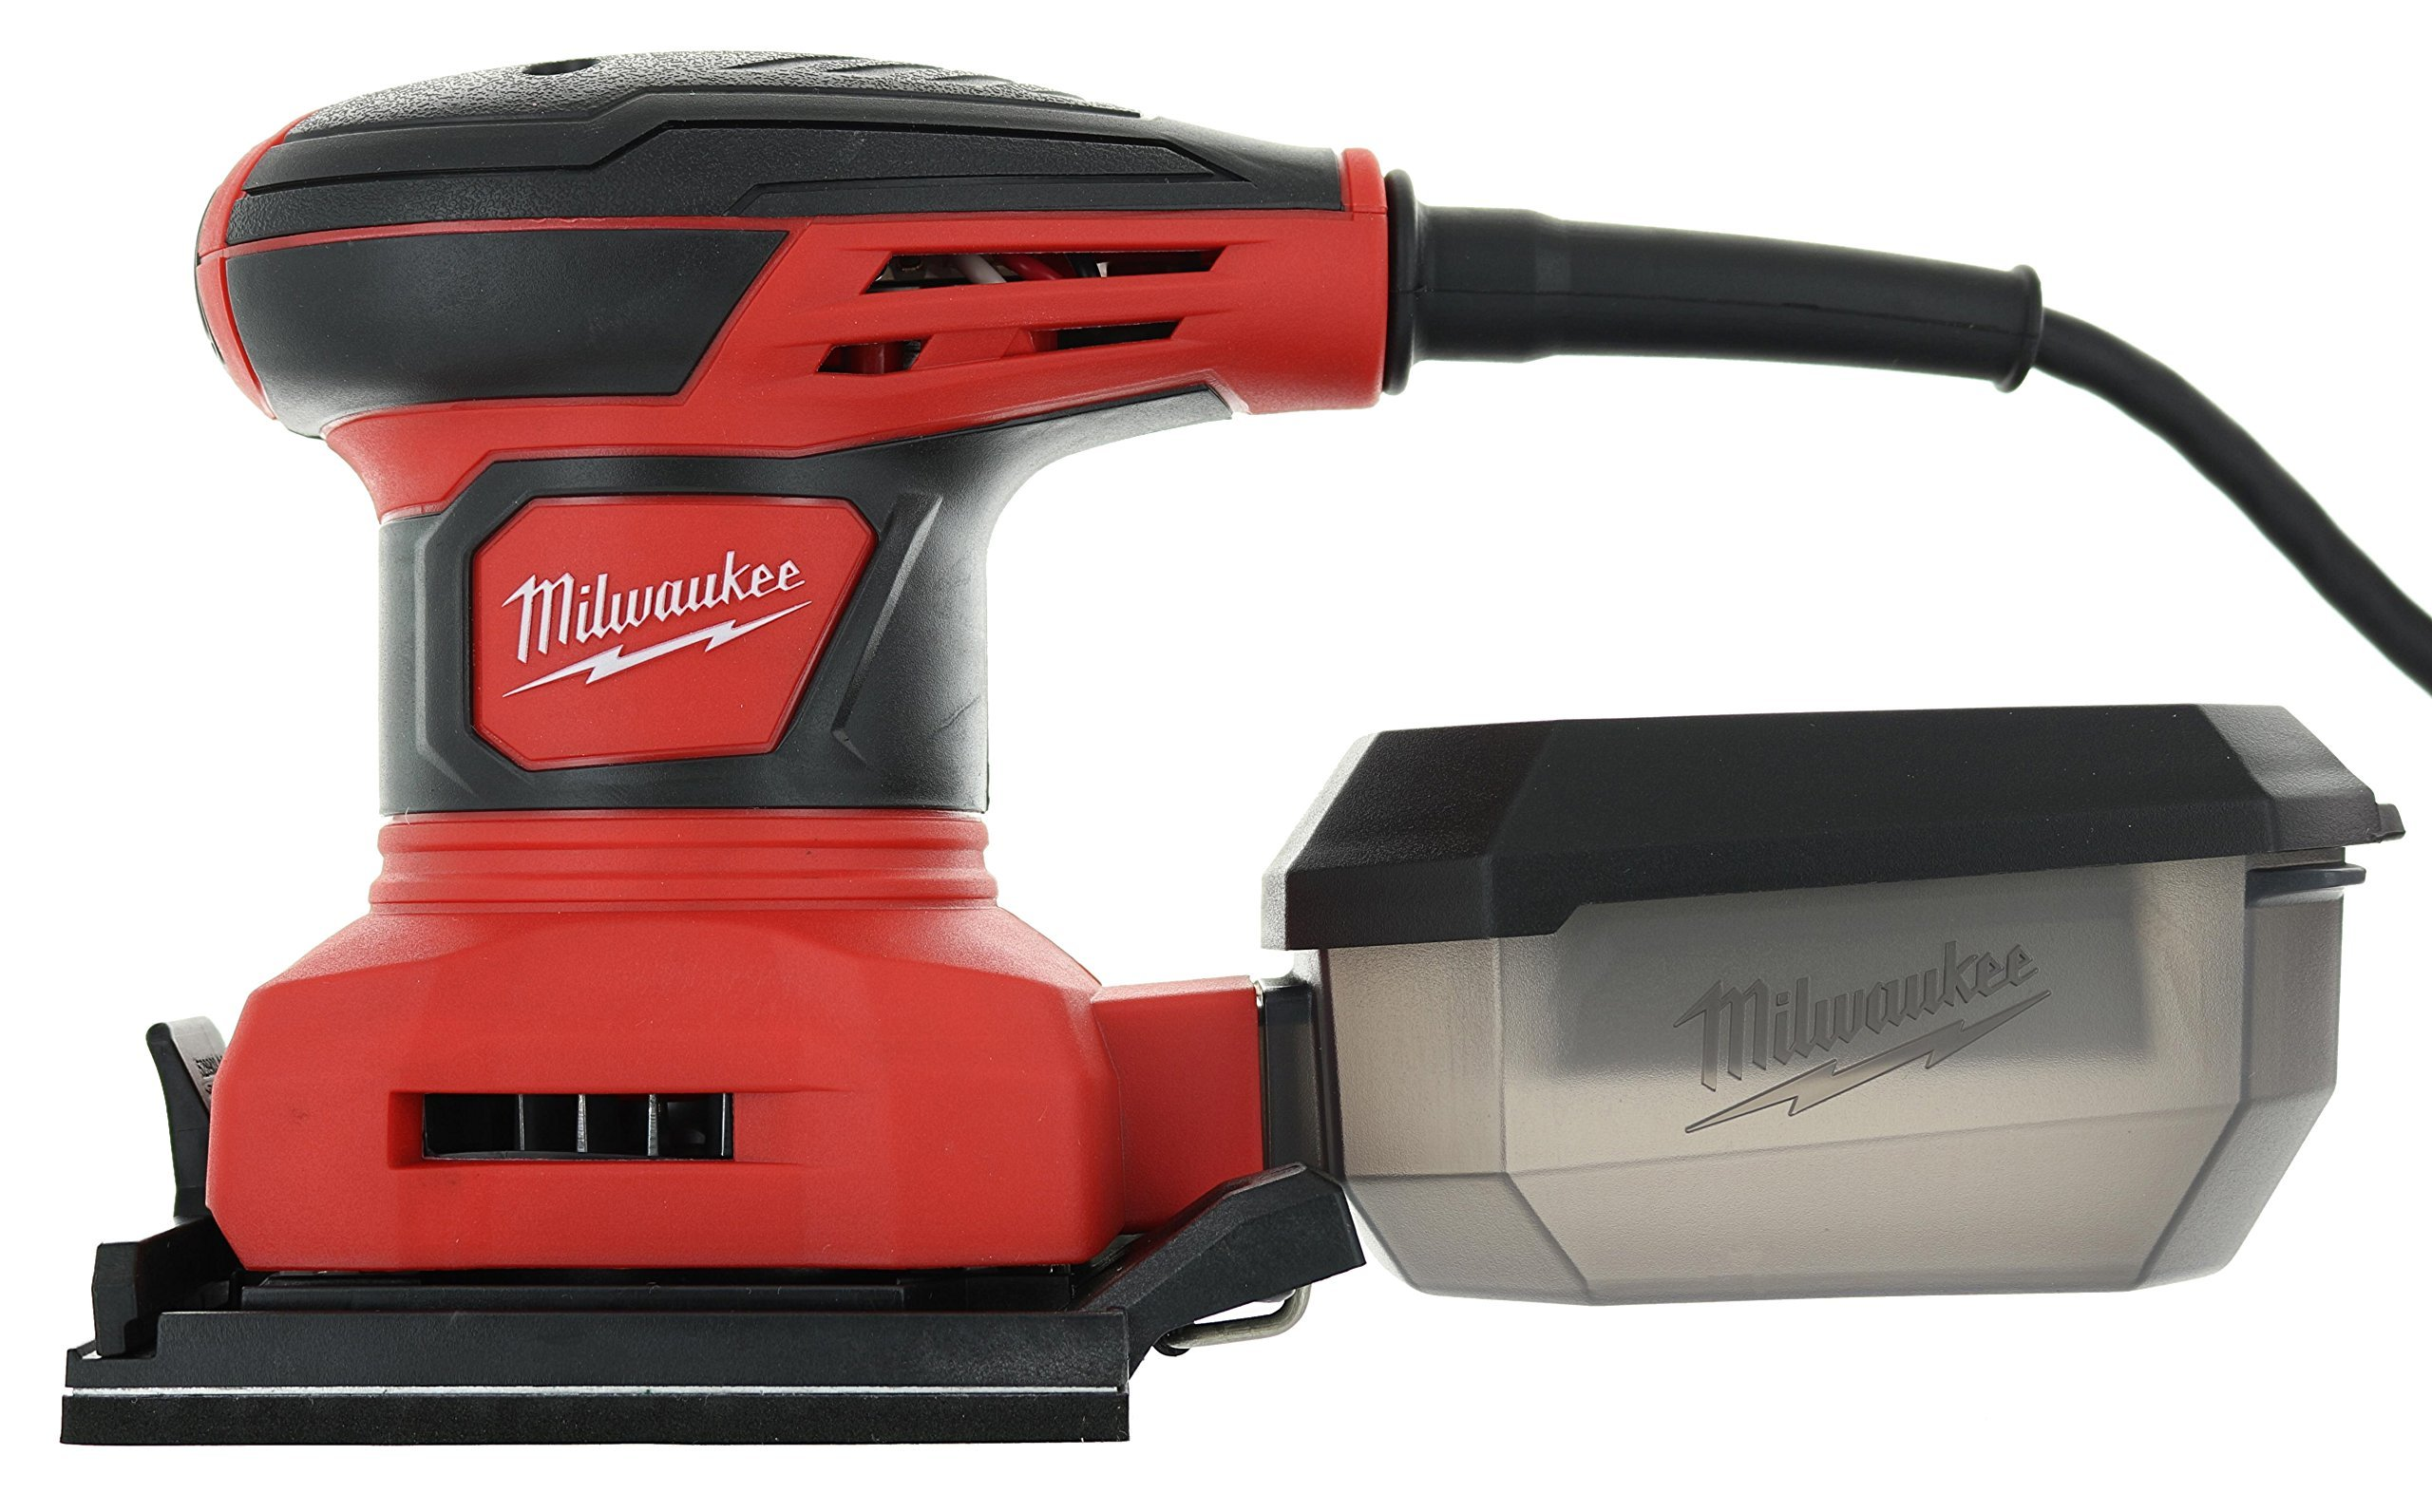 Milwaukee 6033-21 3 Amp 1/4 Sheet Orbital 14,000 OBM Compact Palm Sander with Dust Canister (2 Sheets of Sandpaper Included) by Milwaukee (Image #2)